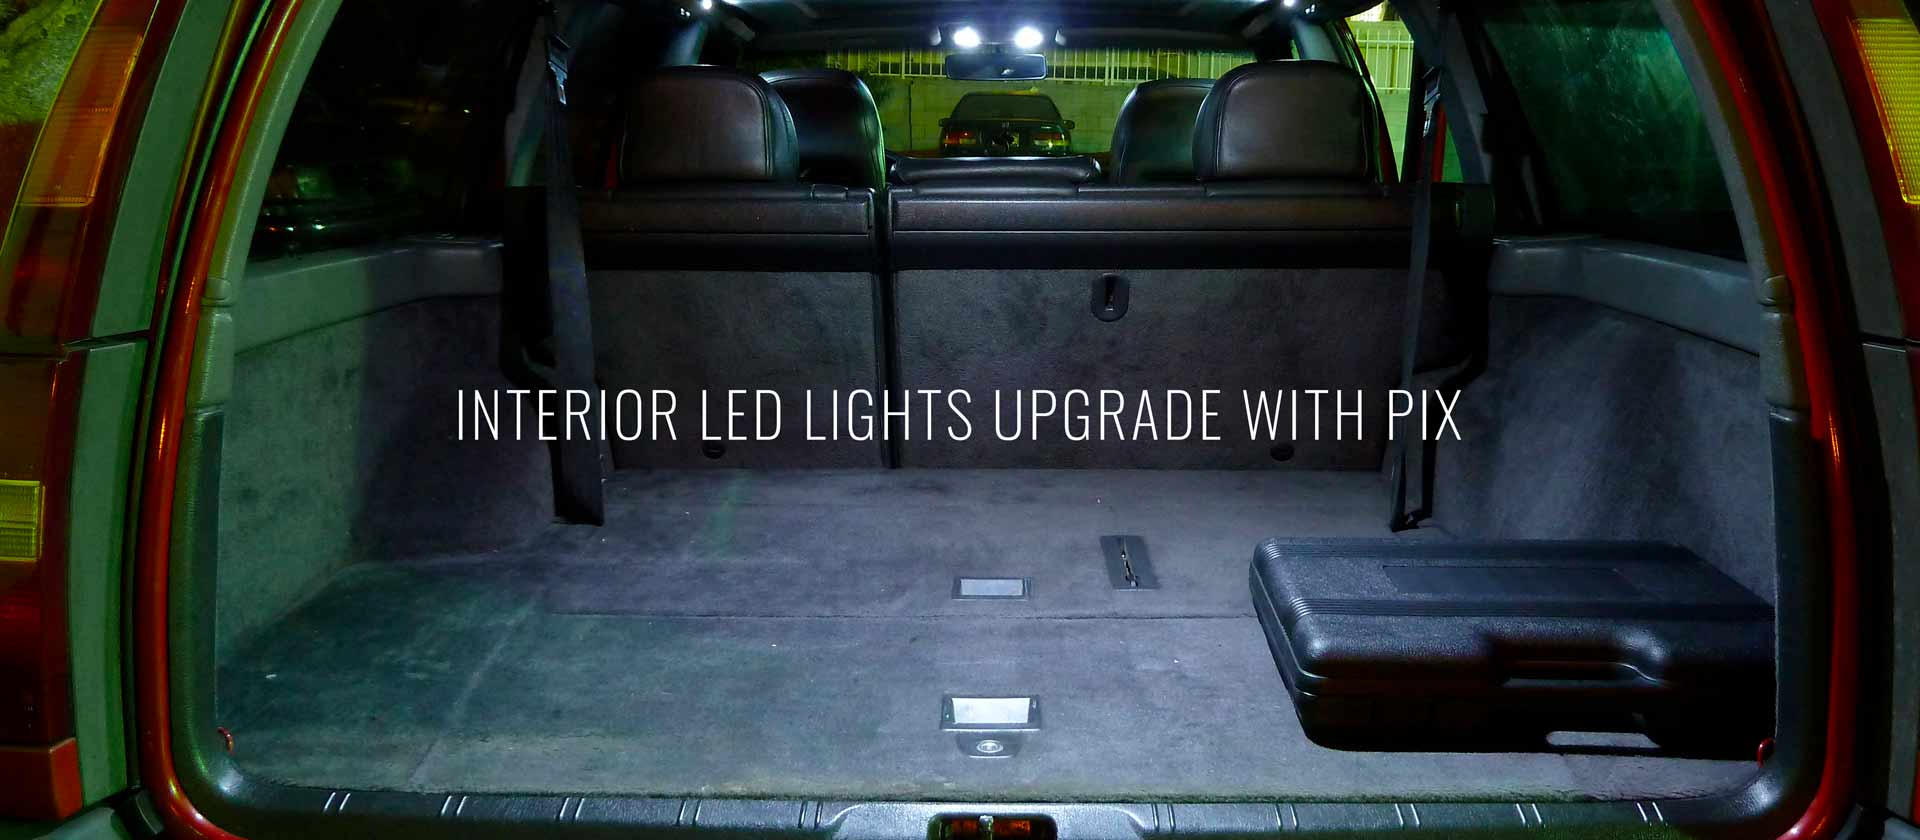 Interior Led Lights Upgrade With Pix -